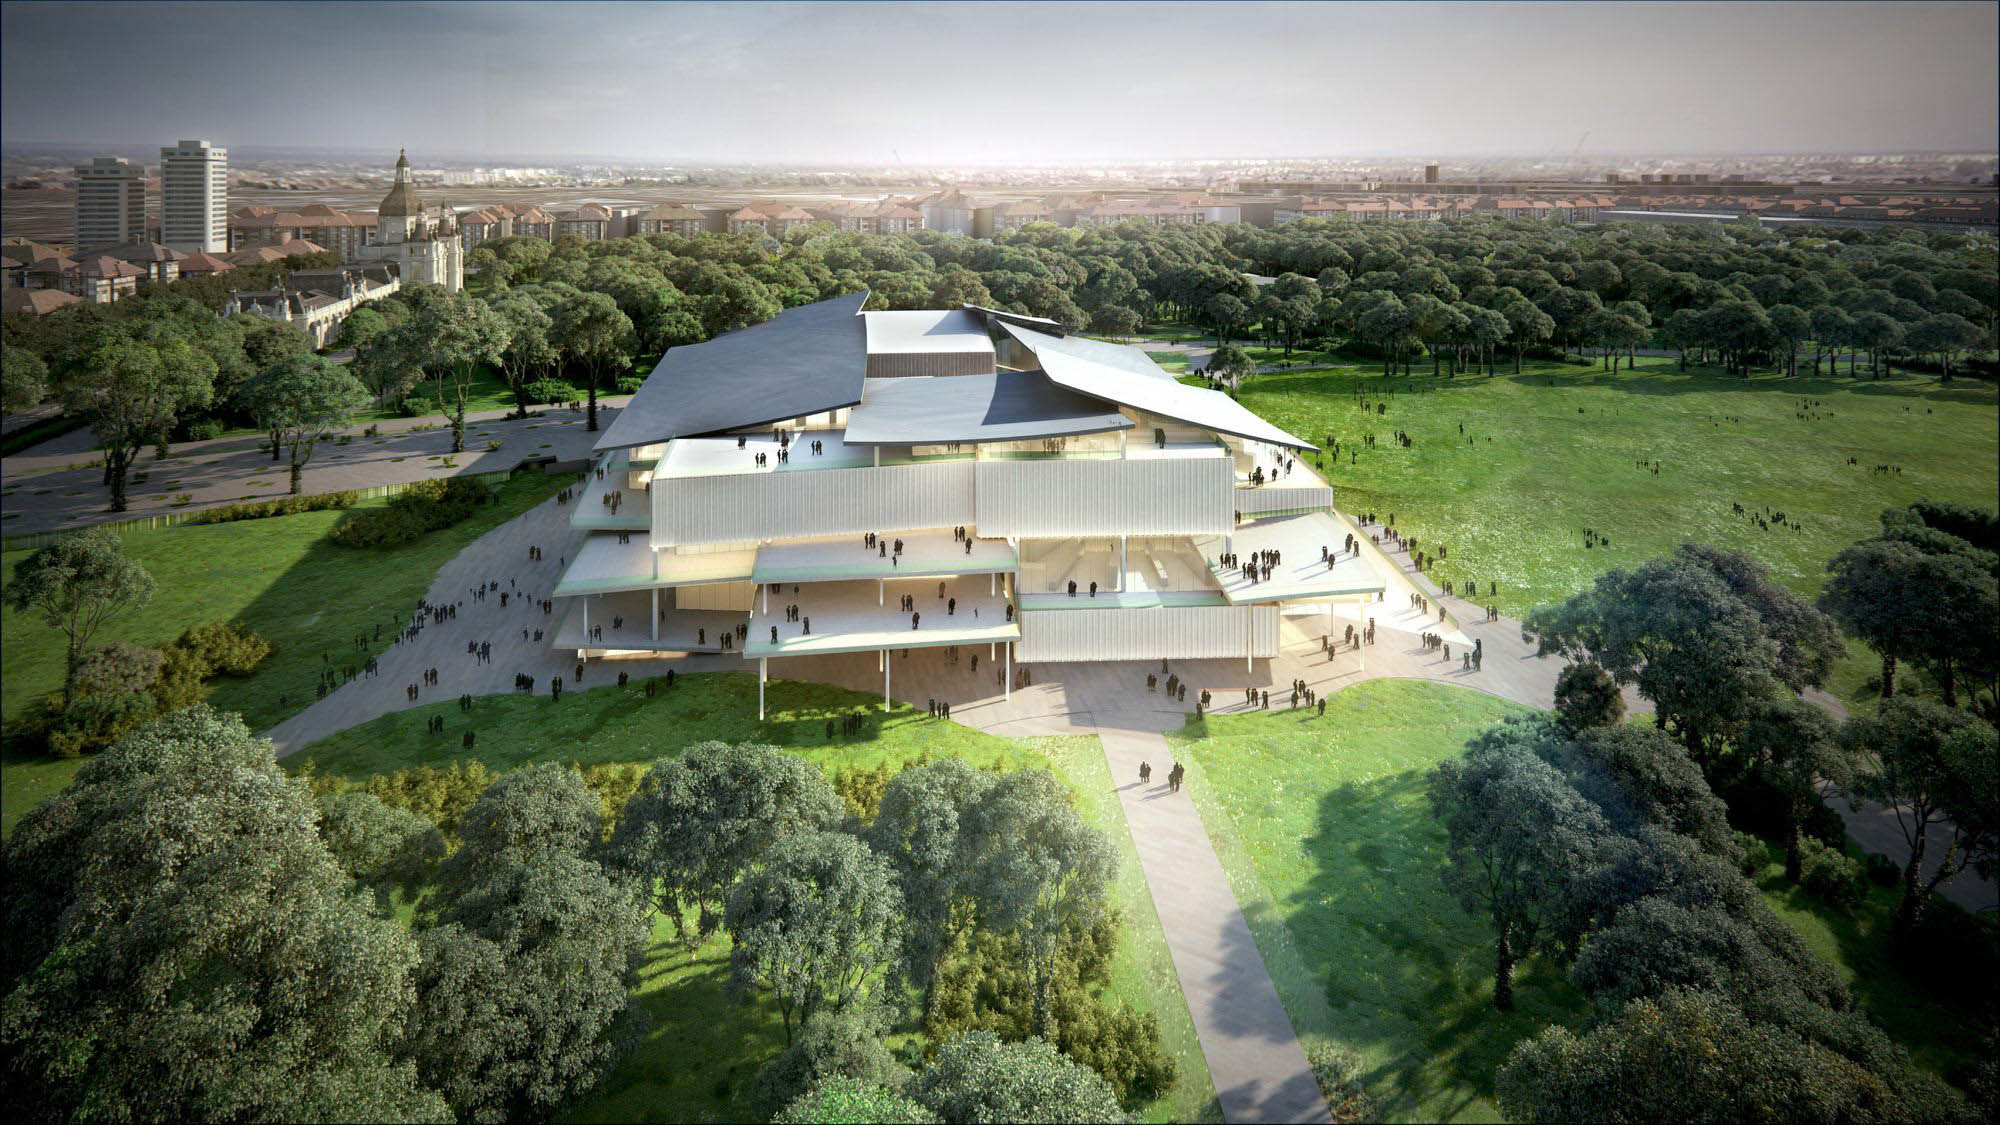 New National Gallery and Ludwig Museum, Budapest design by SANAA